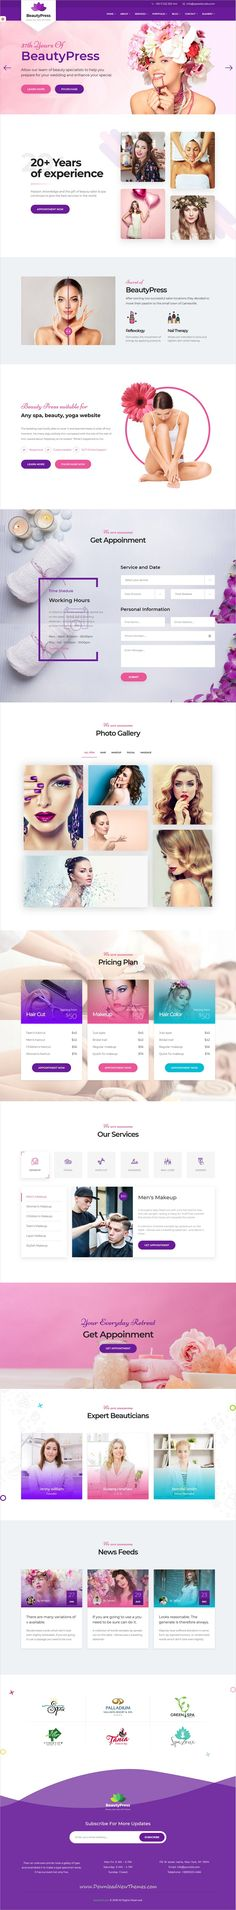 BeautyPress is clean and modern design 5in1 responsive bootstrap HTML template for beauty #spa, #salon and #wellness centers #website to live preview & download click on Visit